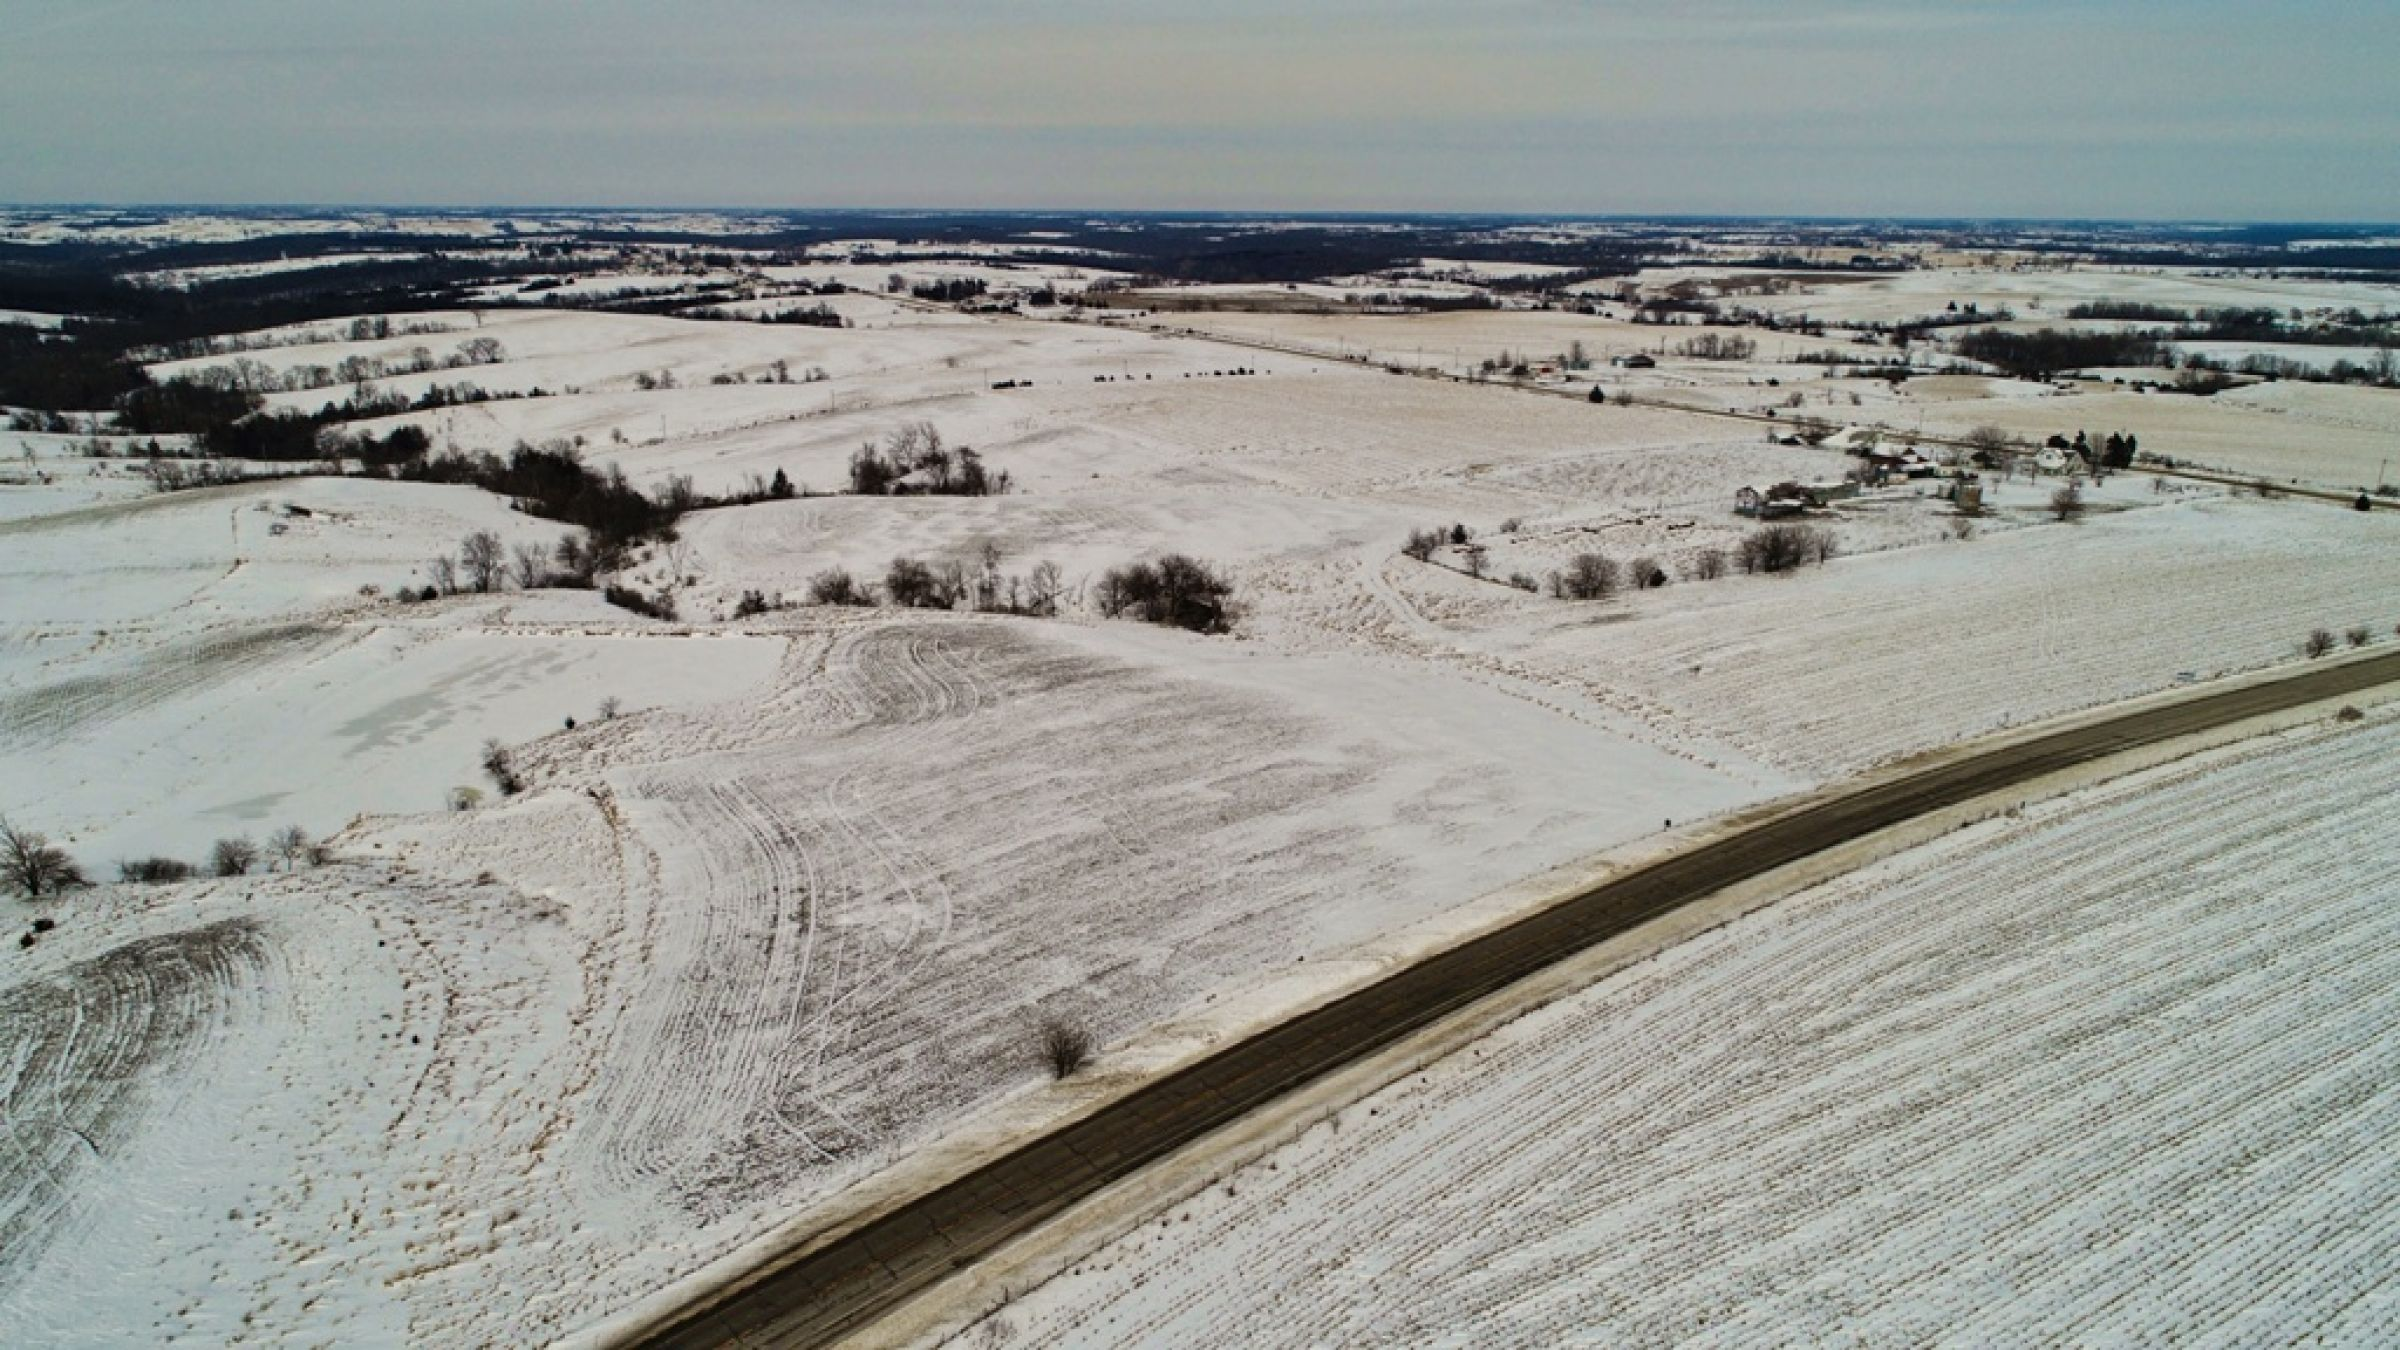 Peoples Company Land For Sale-Clarke County Iowa-Auction - Starline Ave. Osceola, IA 50213